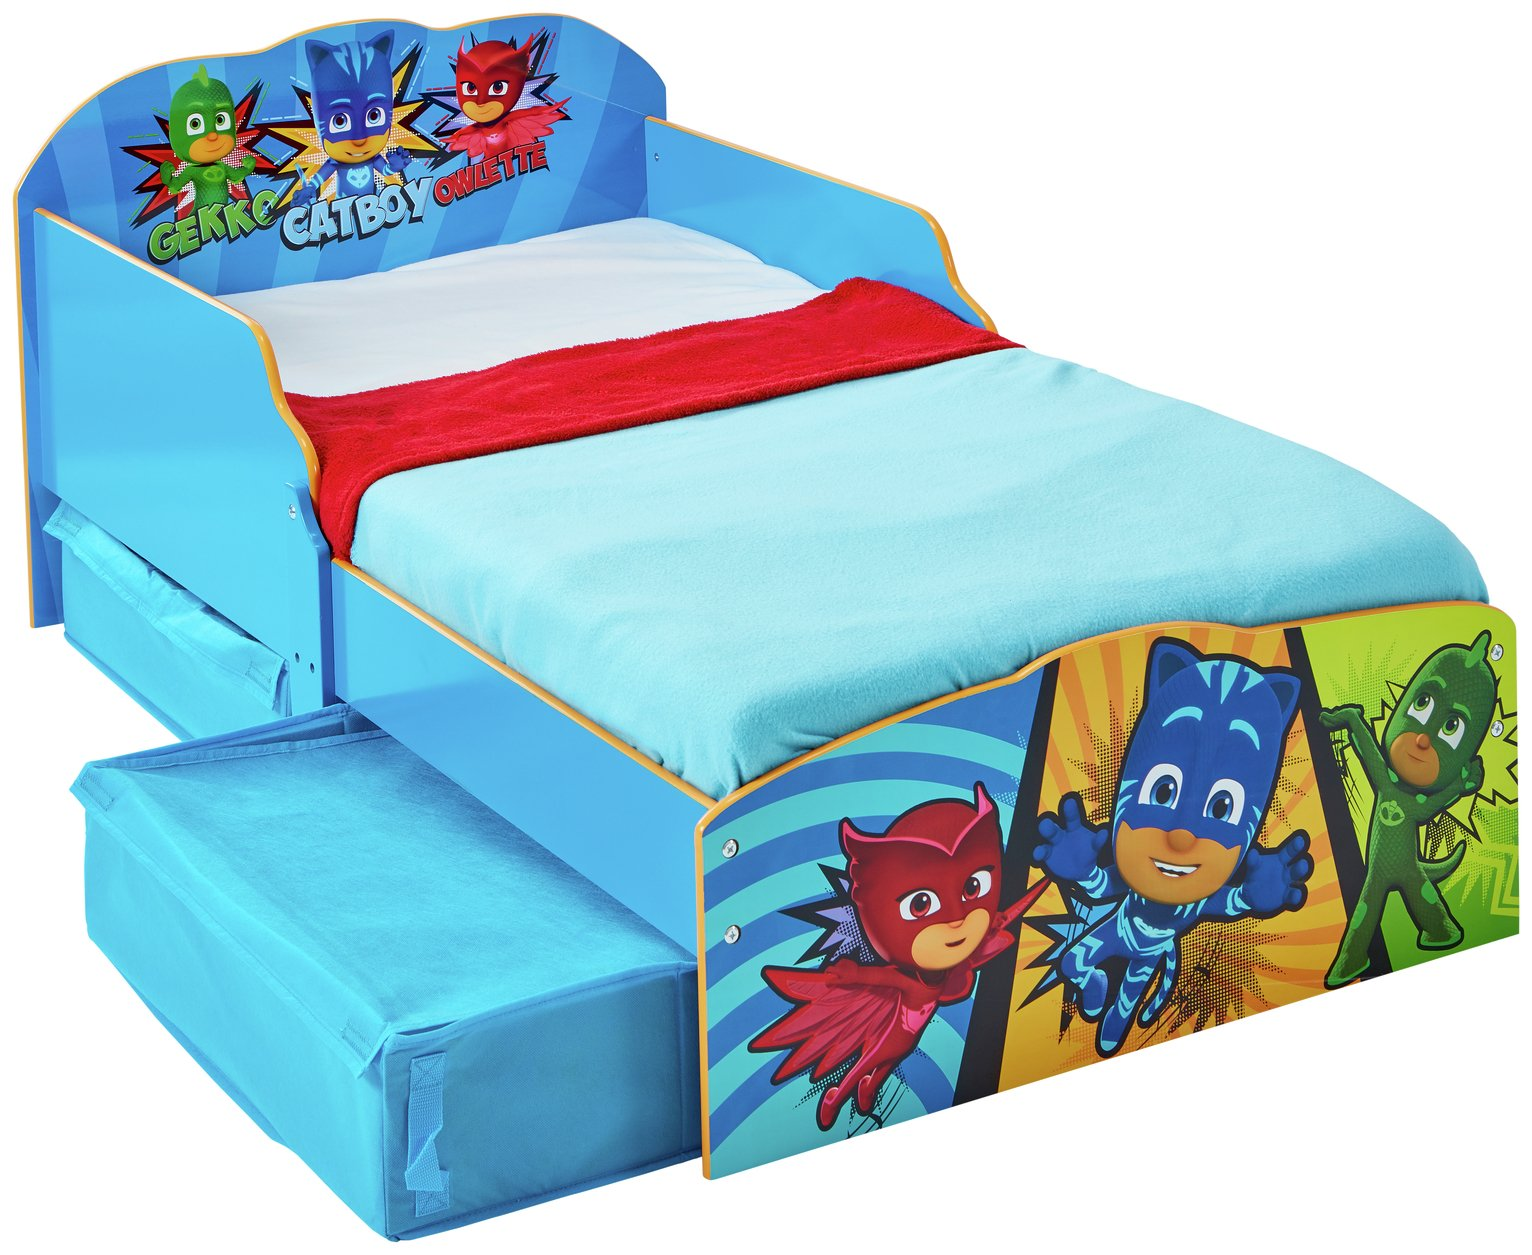 Argos Home PJ Masks Toddler Bed with Underbed Storage